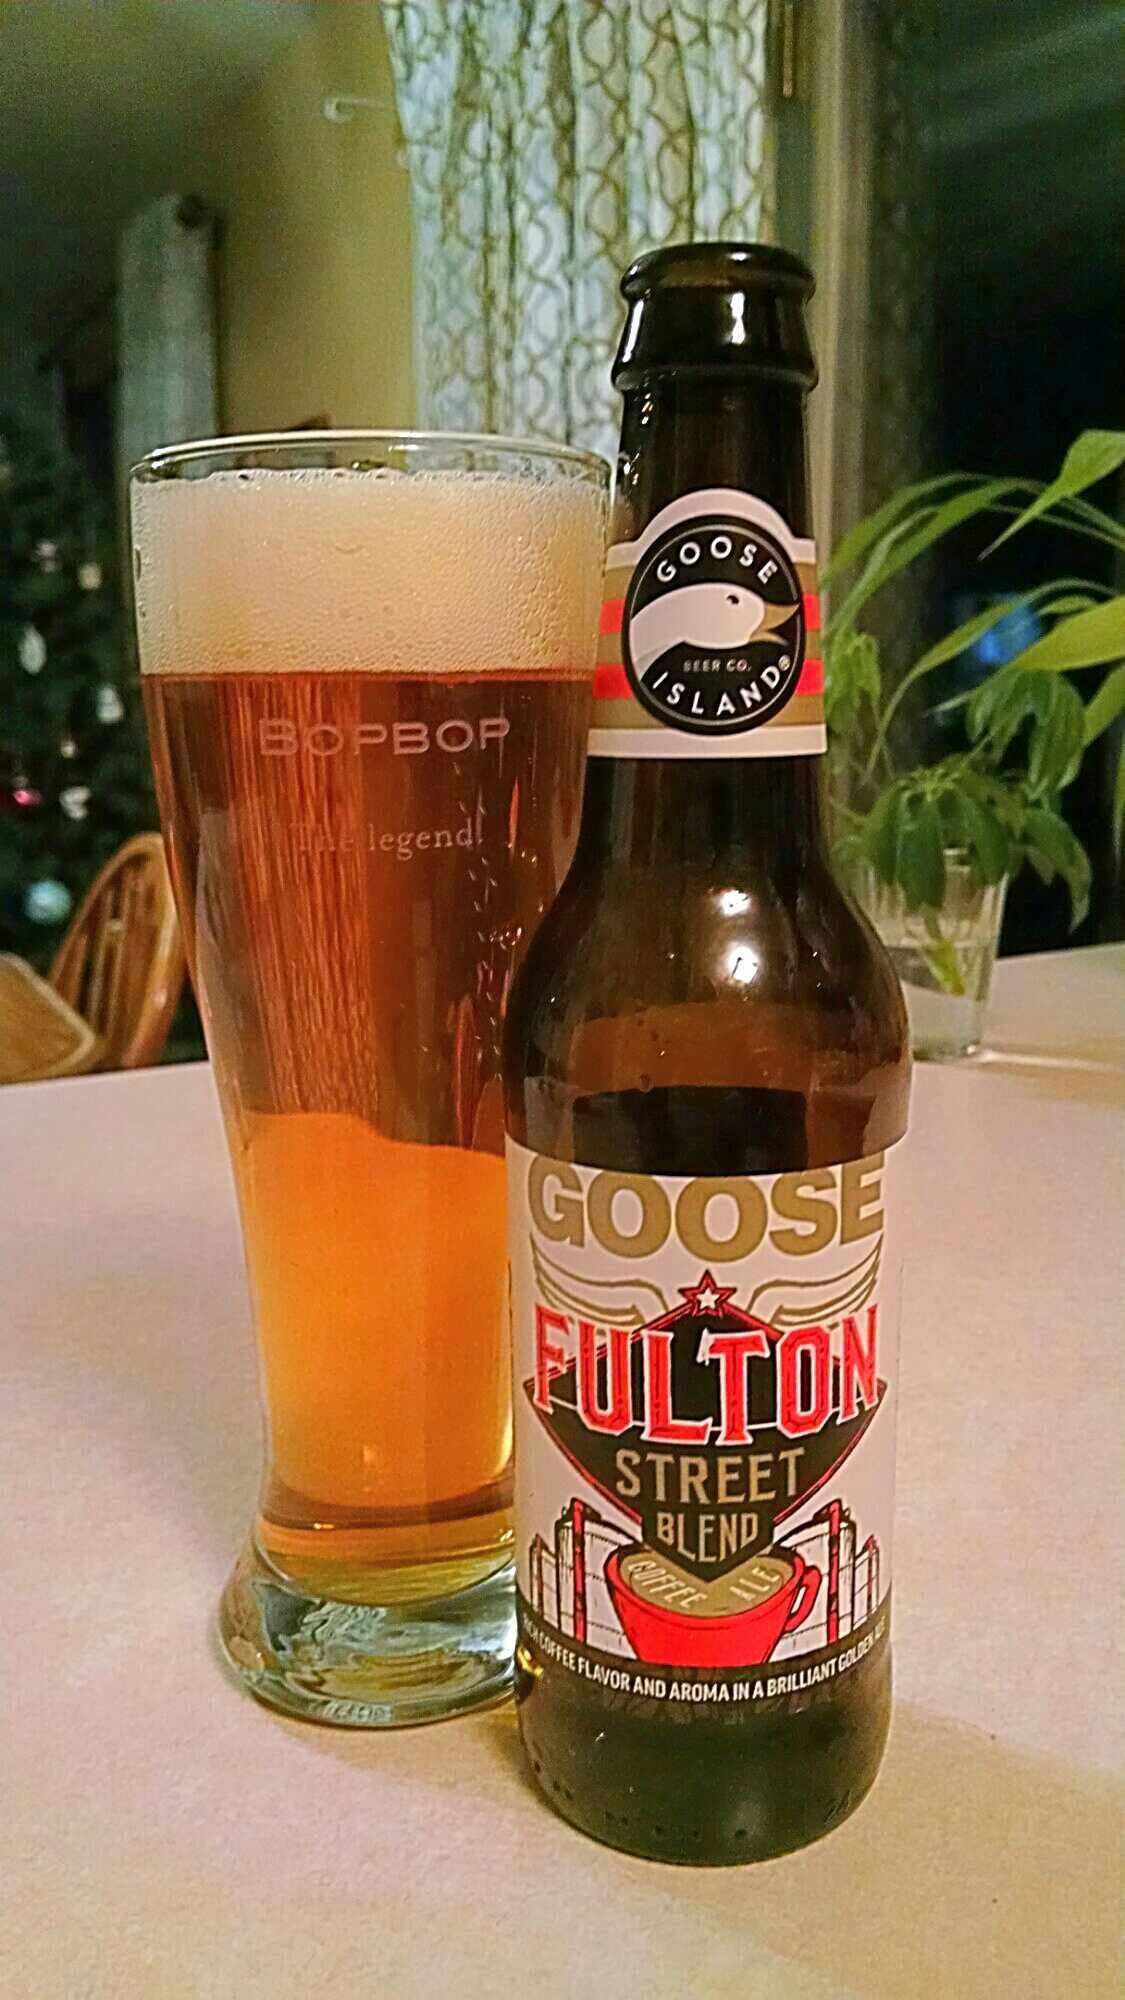 Fulton St Blend Coffee Ale Goose Island Beer Co. ビール, 酒